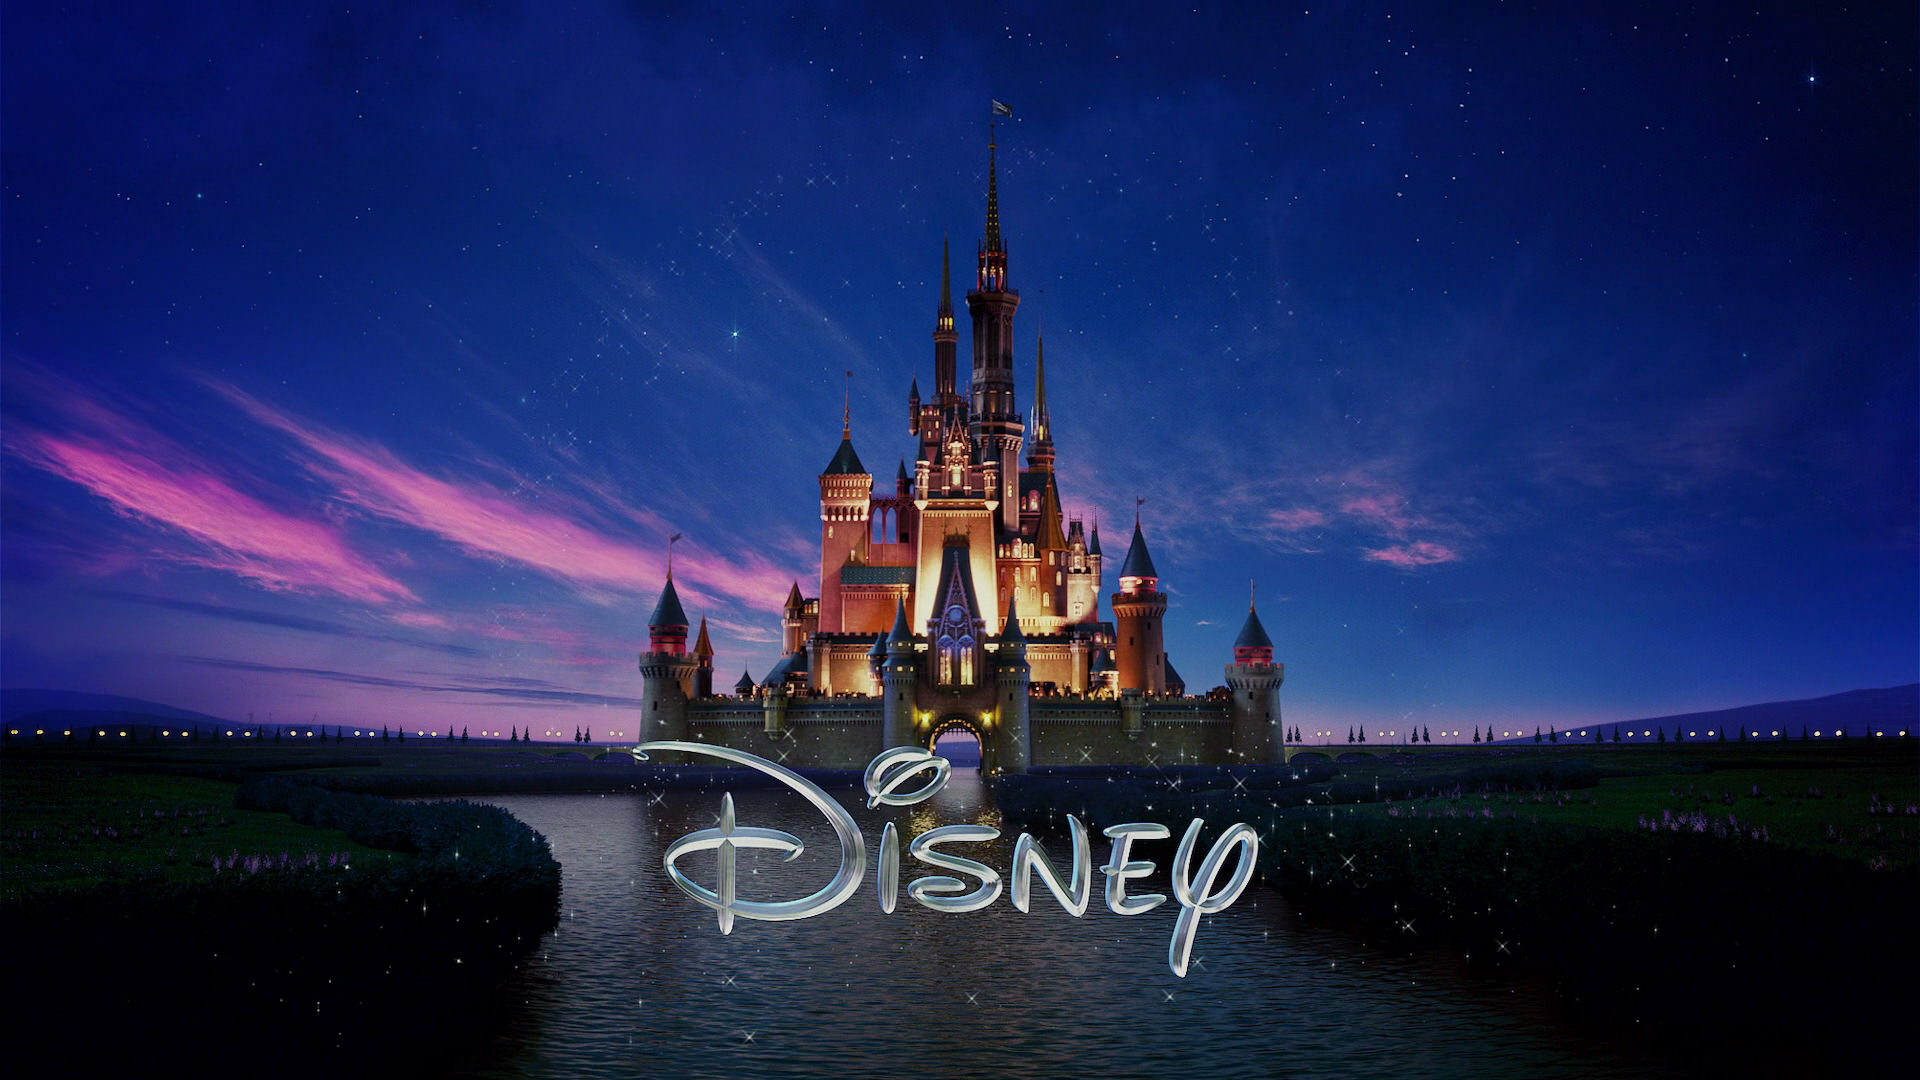 The Disney company's latest logo. Known by millions of millennials, Cinderella's castle.